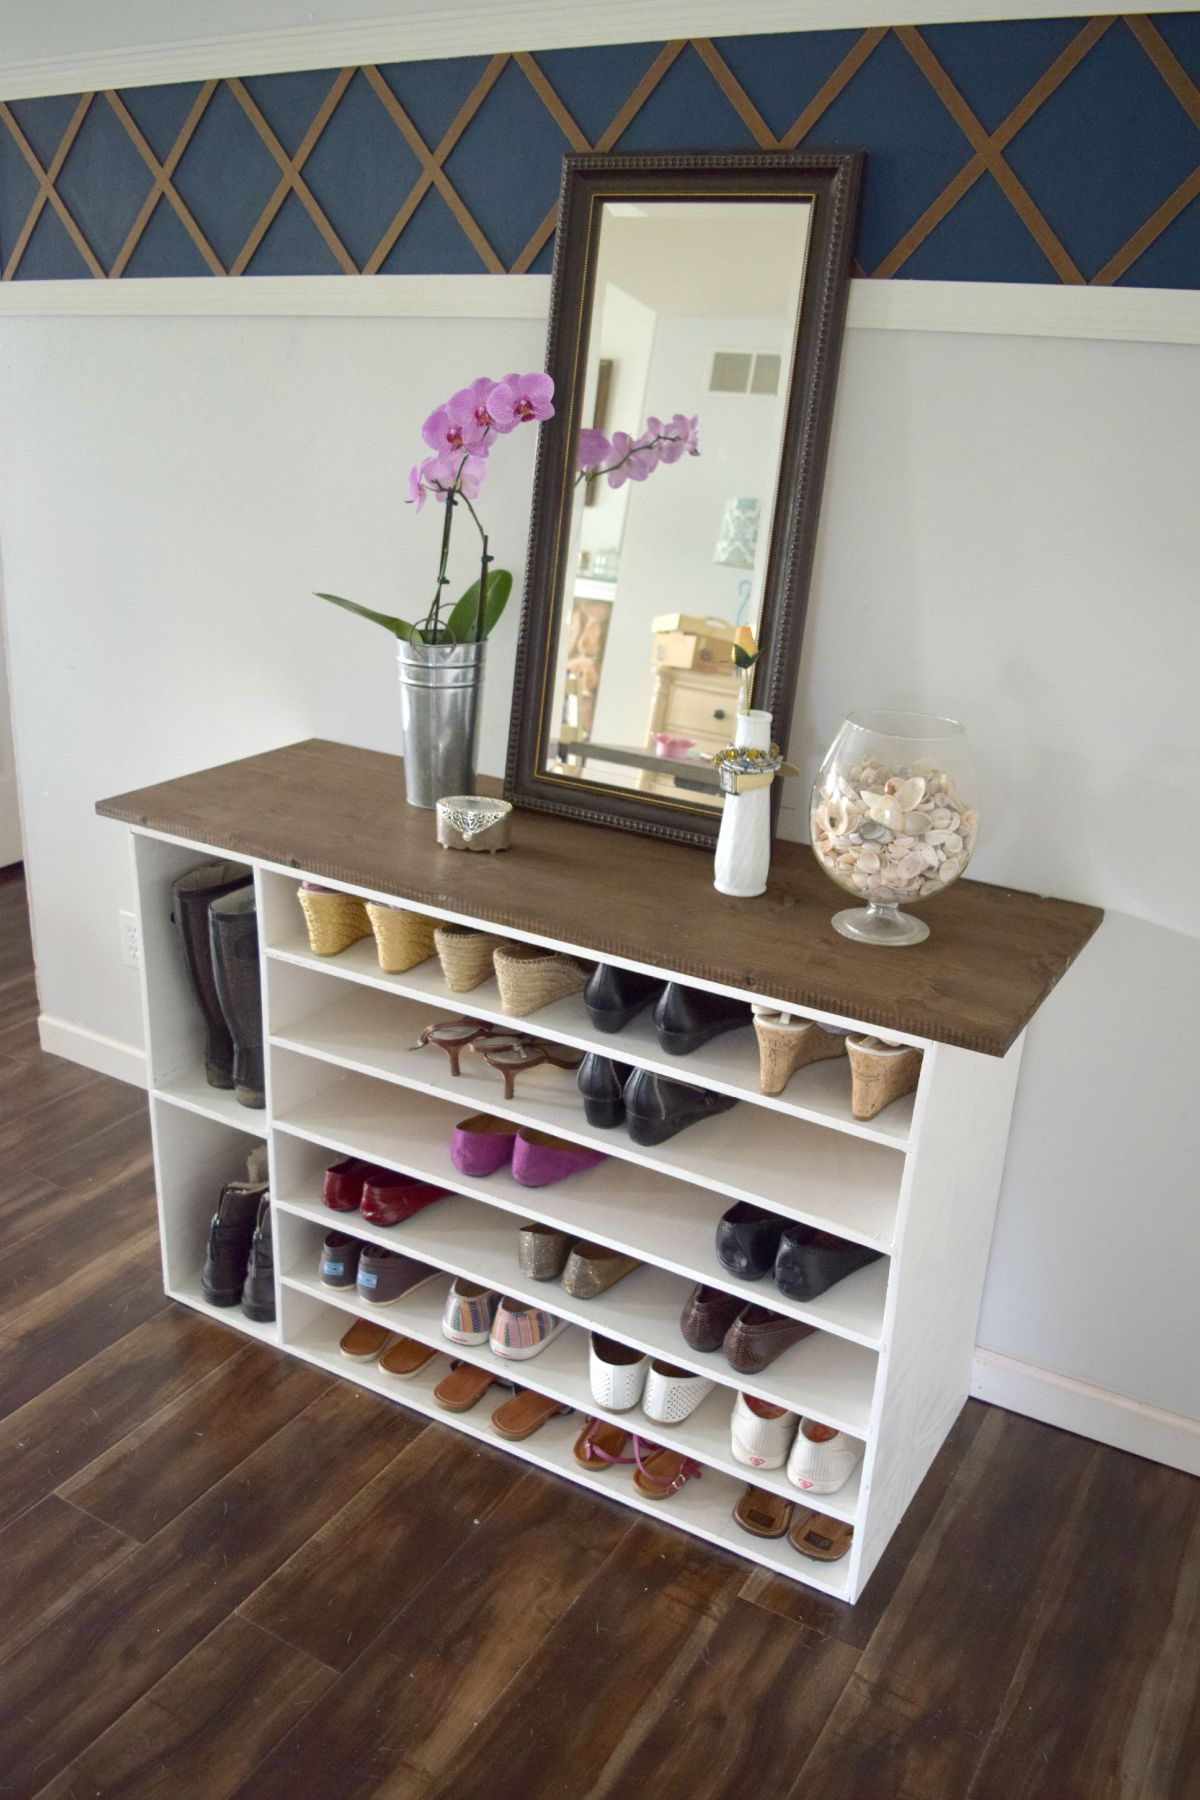 Marvelous Entryway DIY Shoe Rack